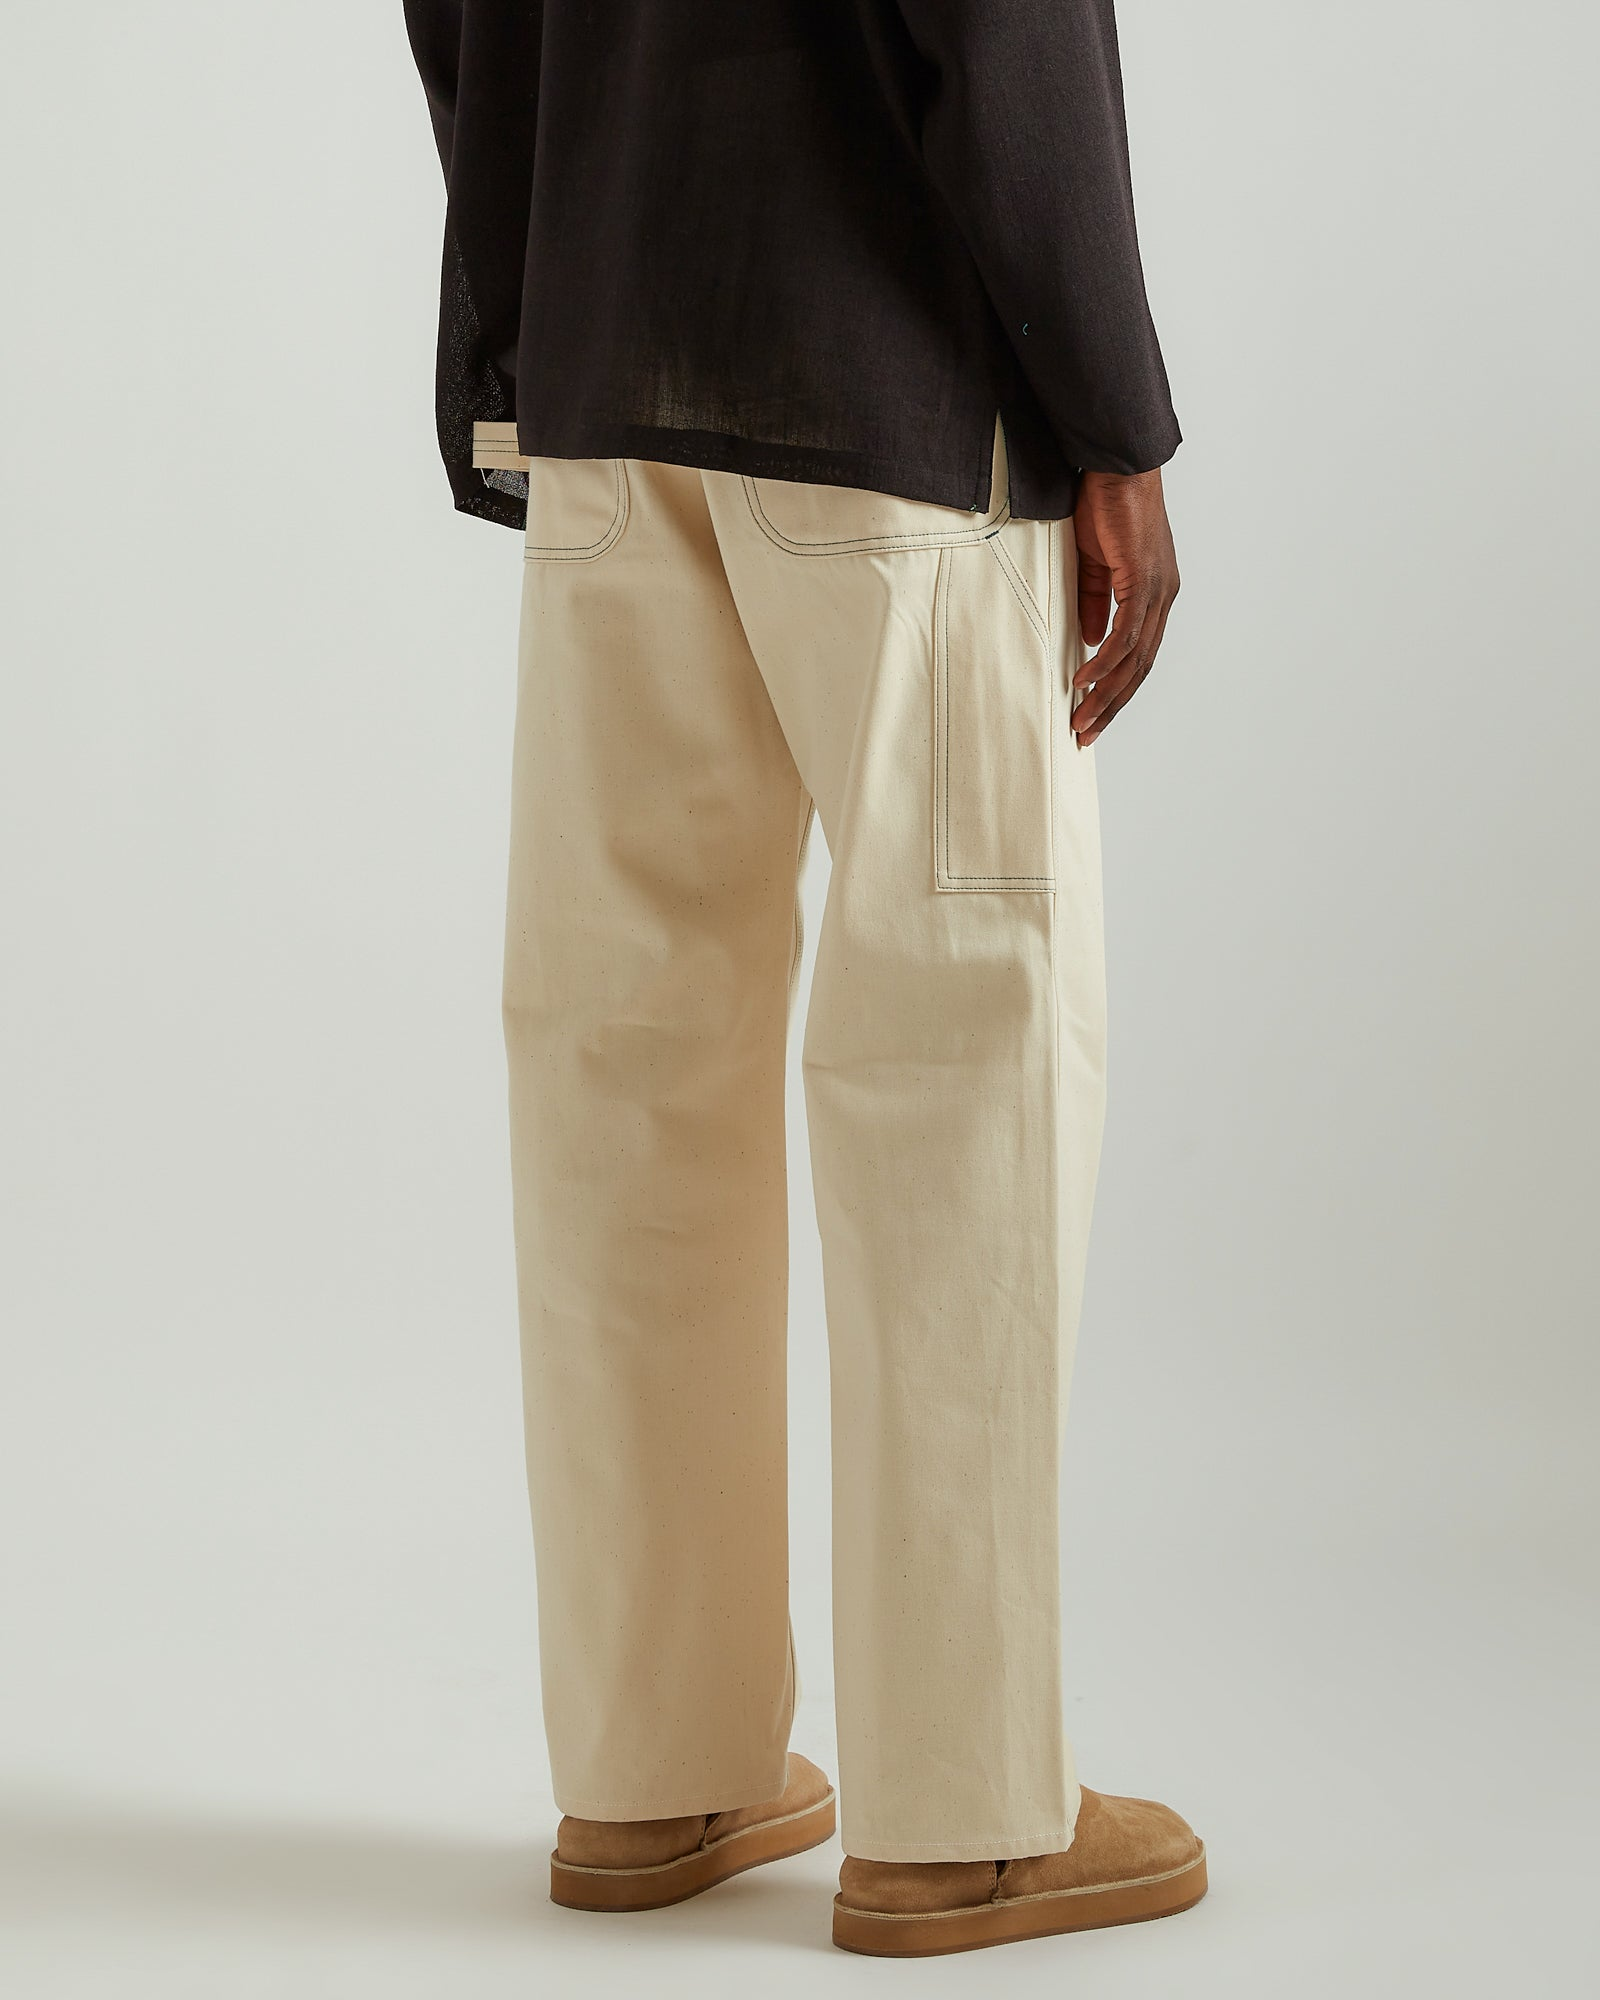 Painter Pant in Off-White